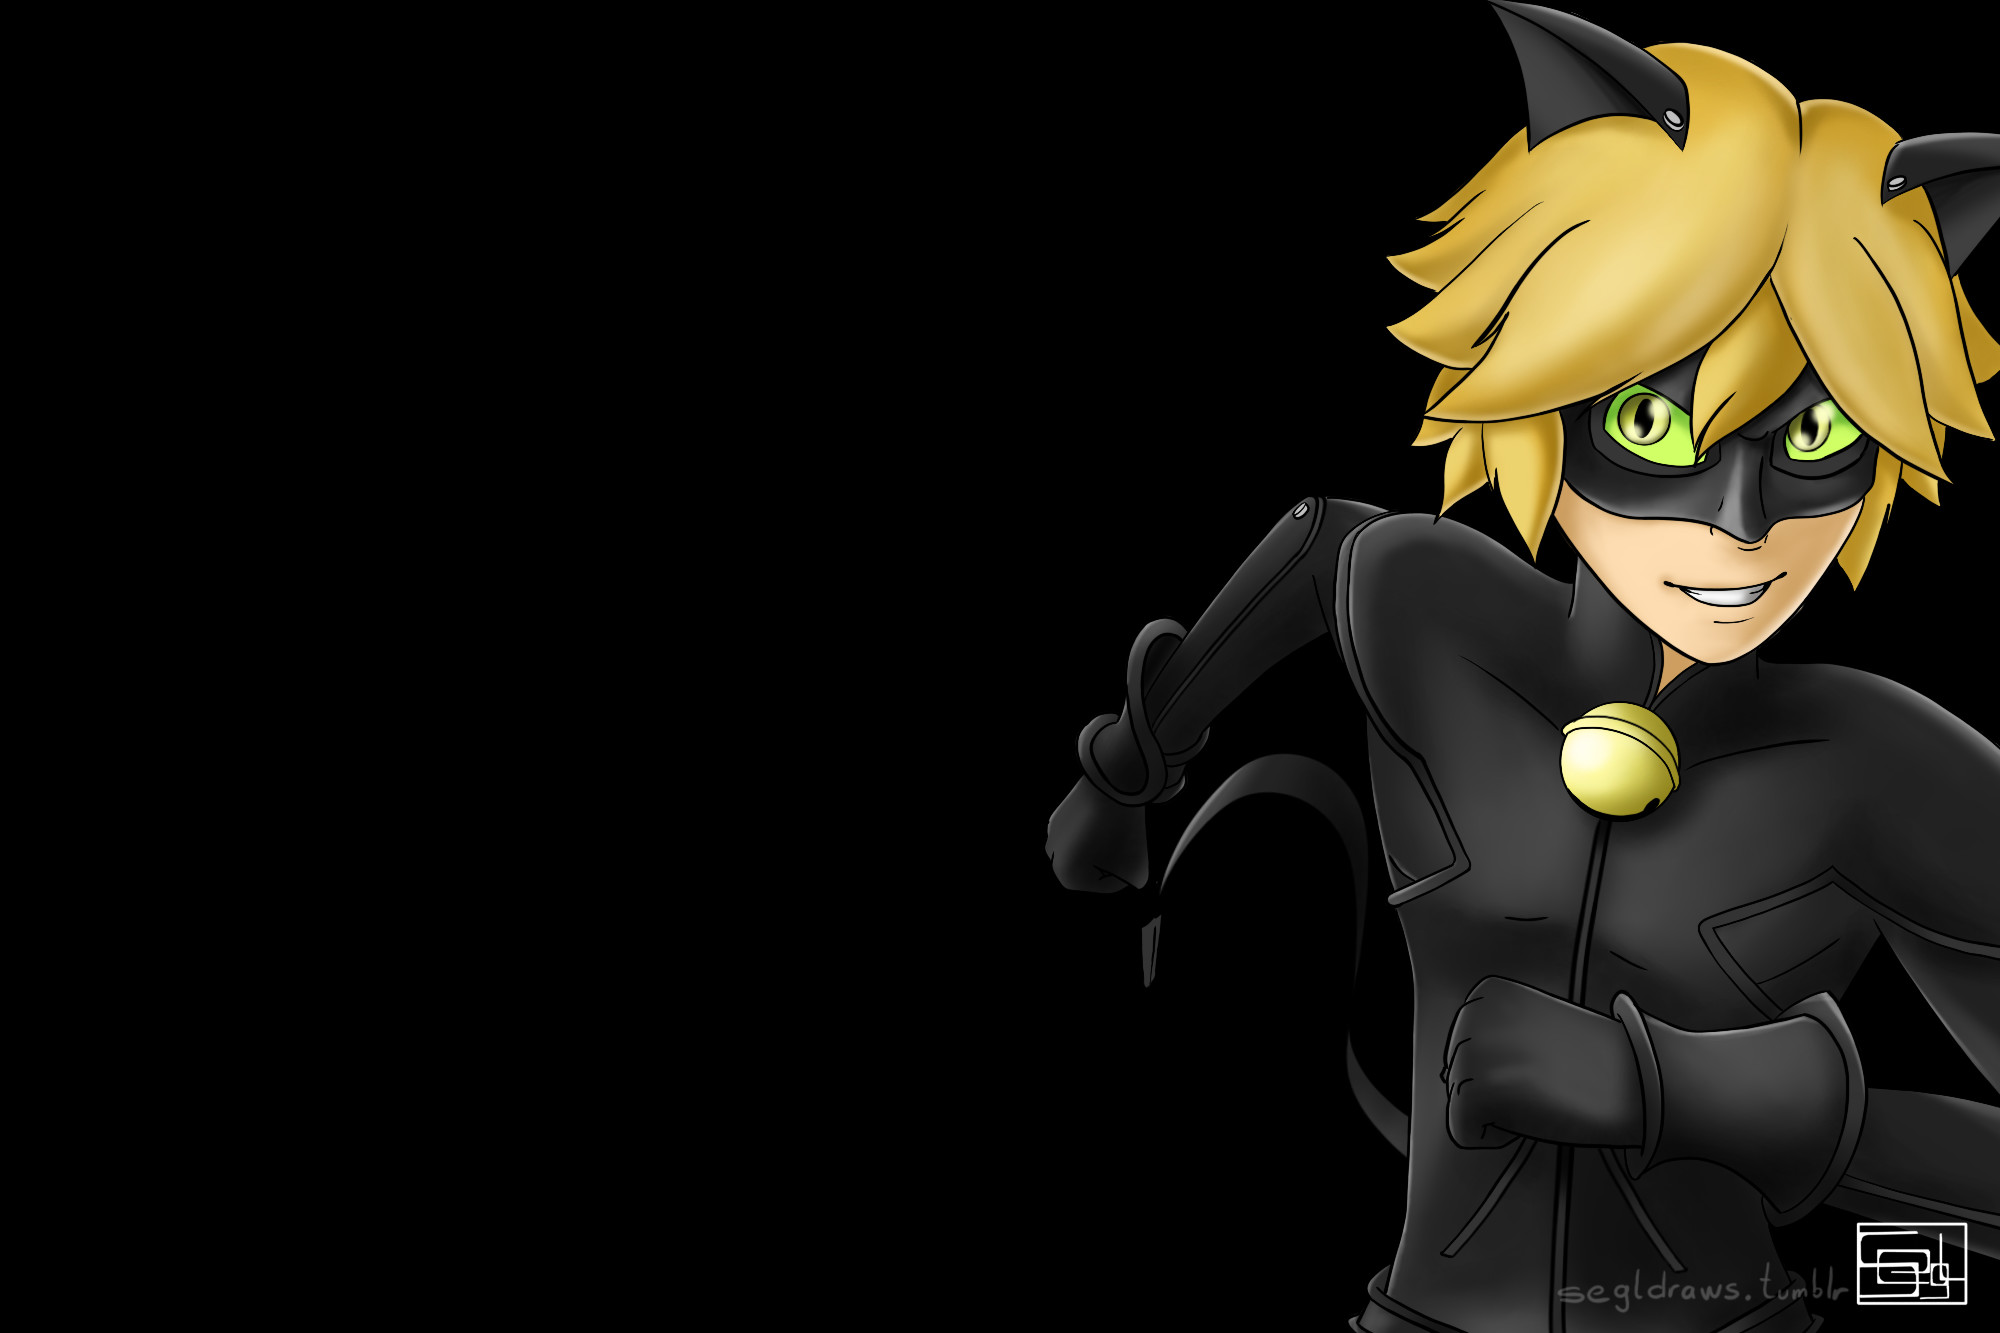 Chat Noir Wallpapers 69 Images HD Wallpapers Download Free Images Wallpaper [1000image.com]